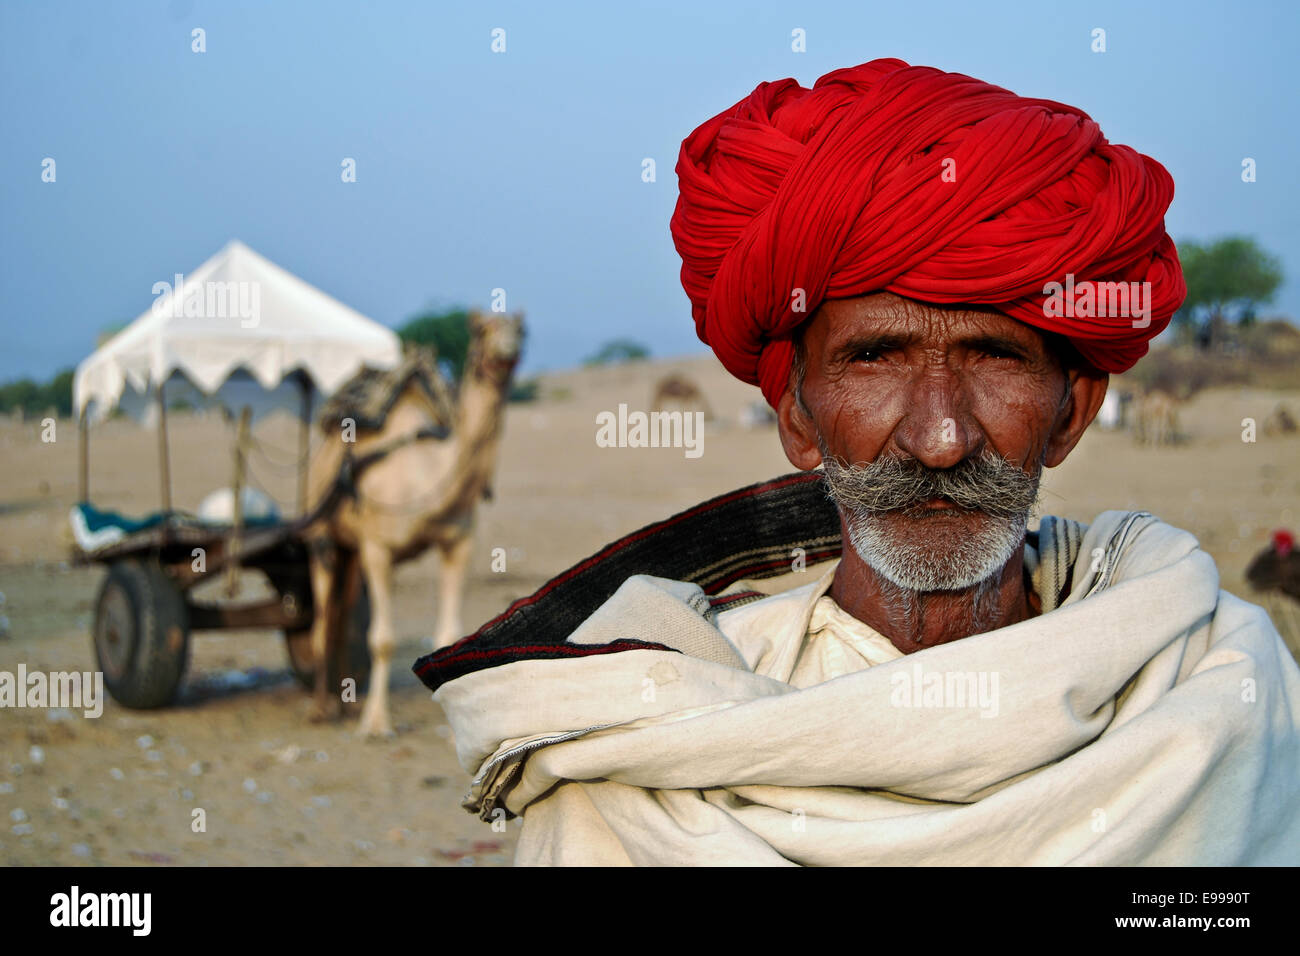 Portrait of a old man with camel cart in the background, Pushkar, Ajmer, Rajasthan, India - Stock Image